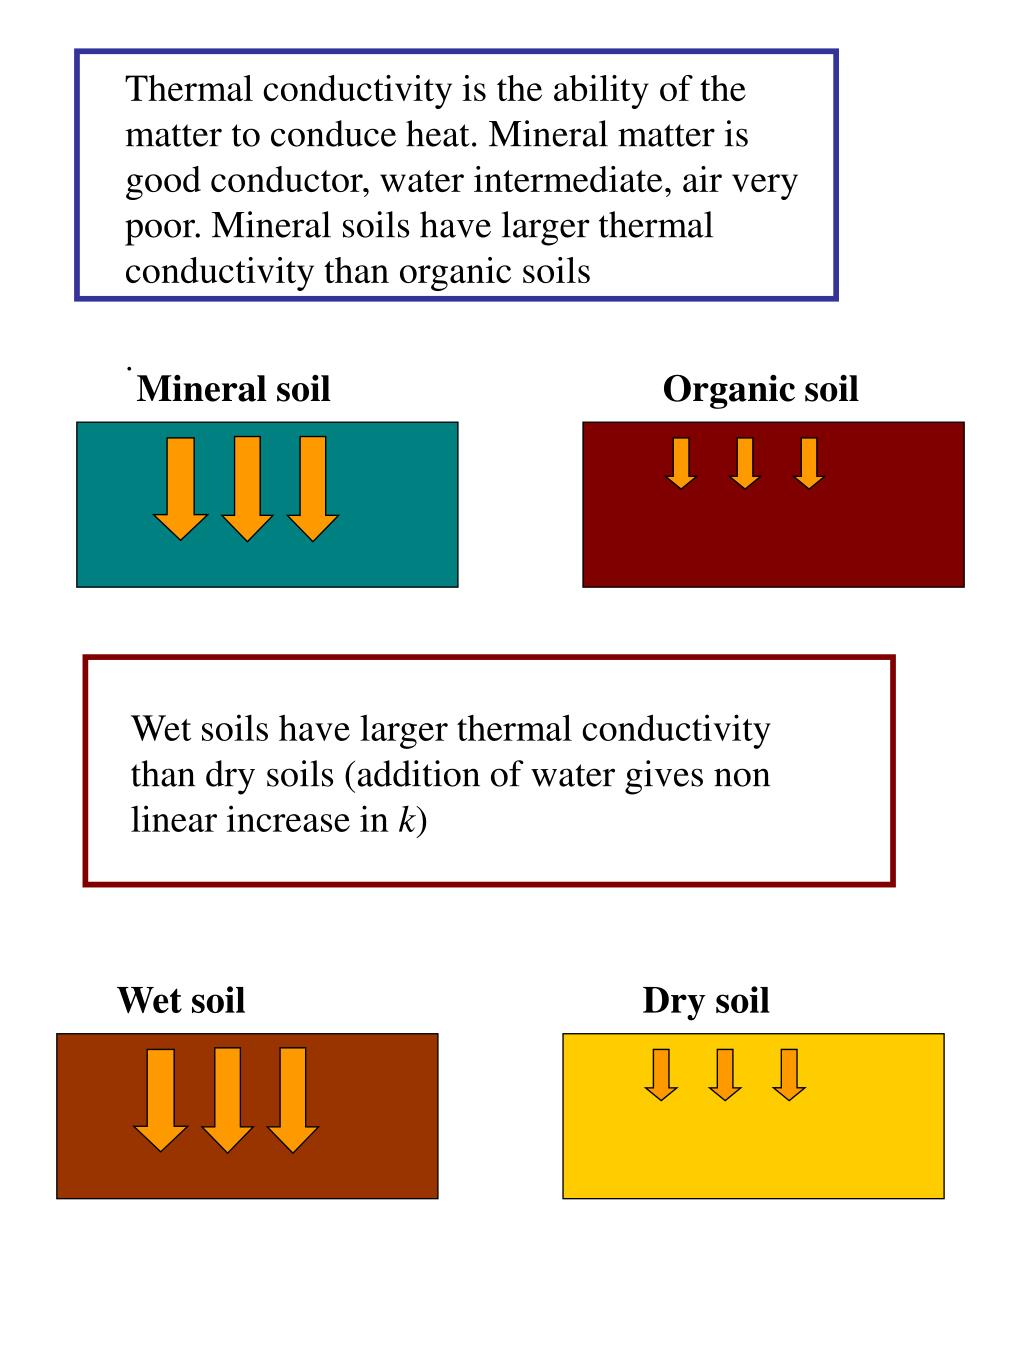 Thermal conductivity is the ability of the matter to conduce heat. Mineral matter is good conductor, water intermediate, air very poor. Mineral soils have larger thermal conductivity than organic soils